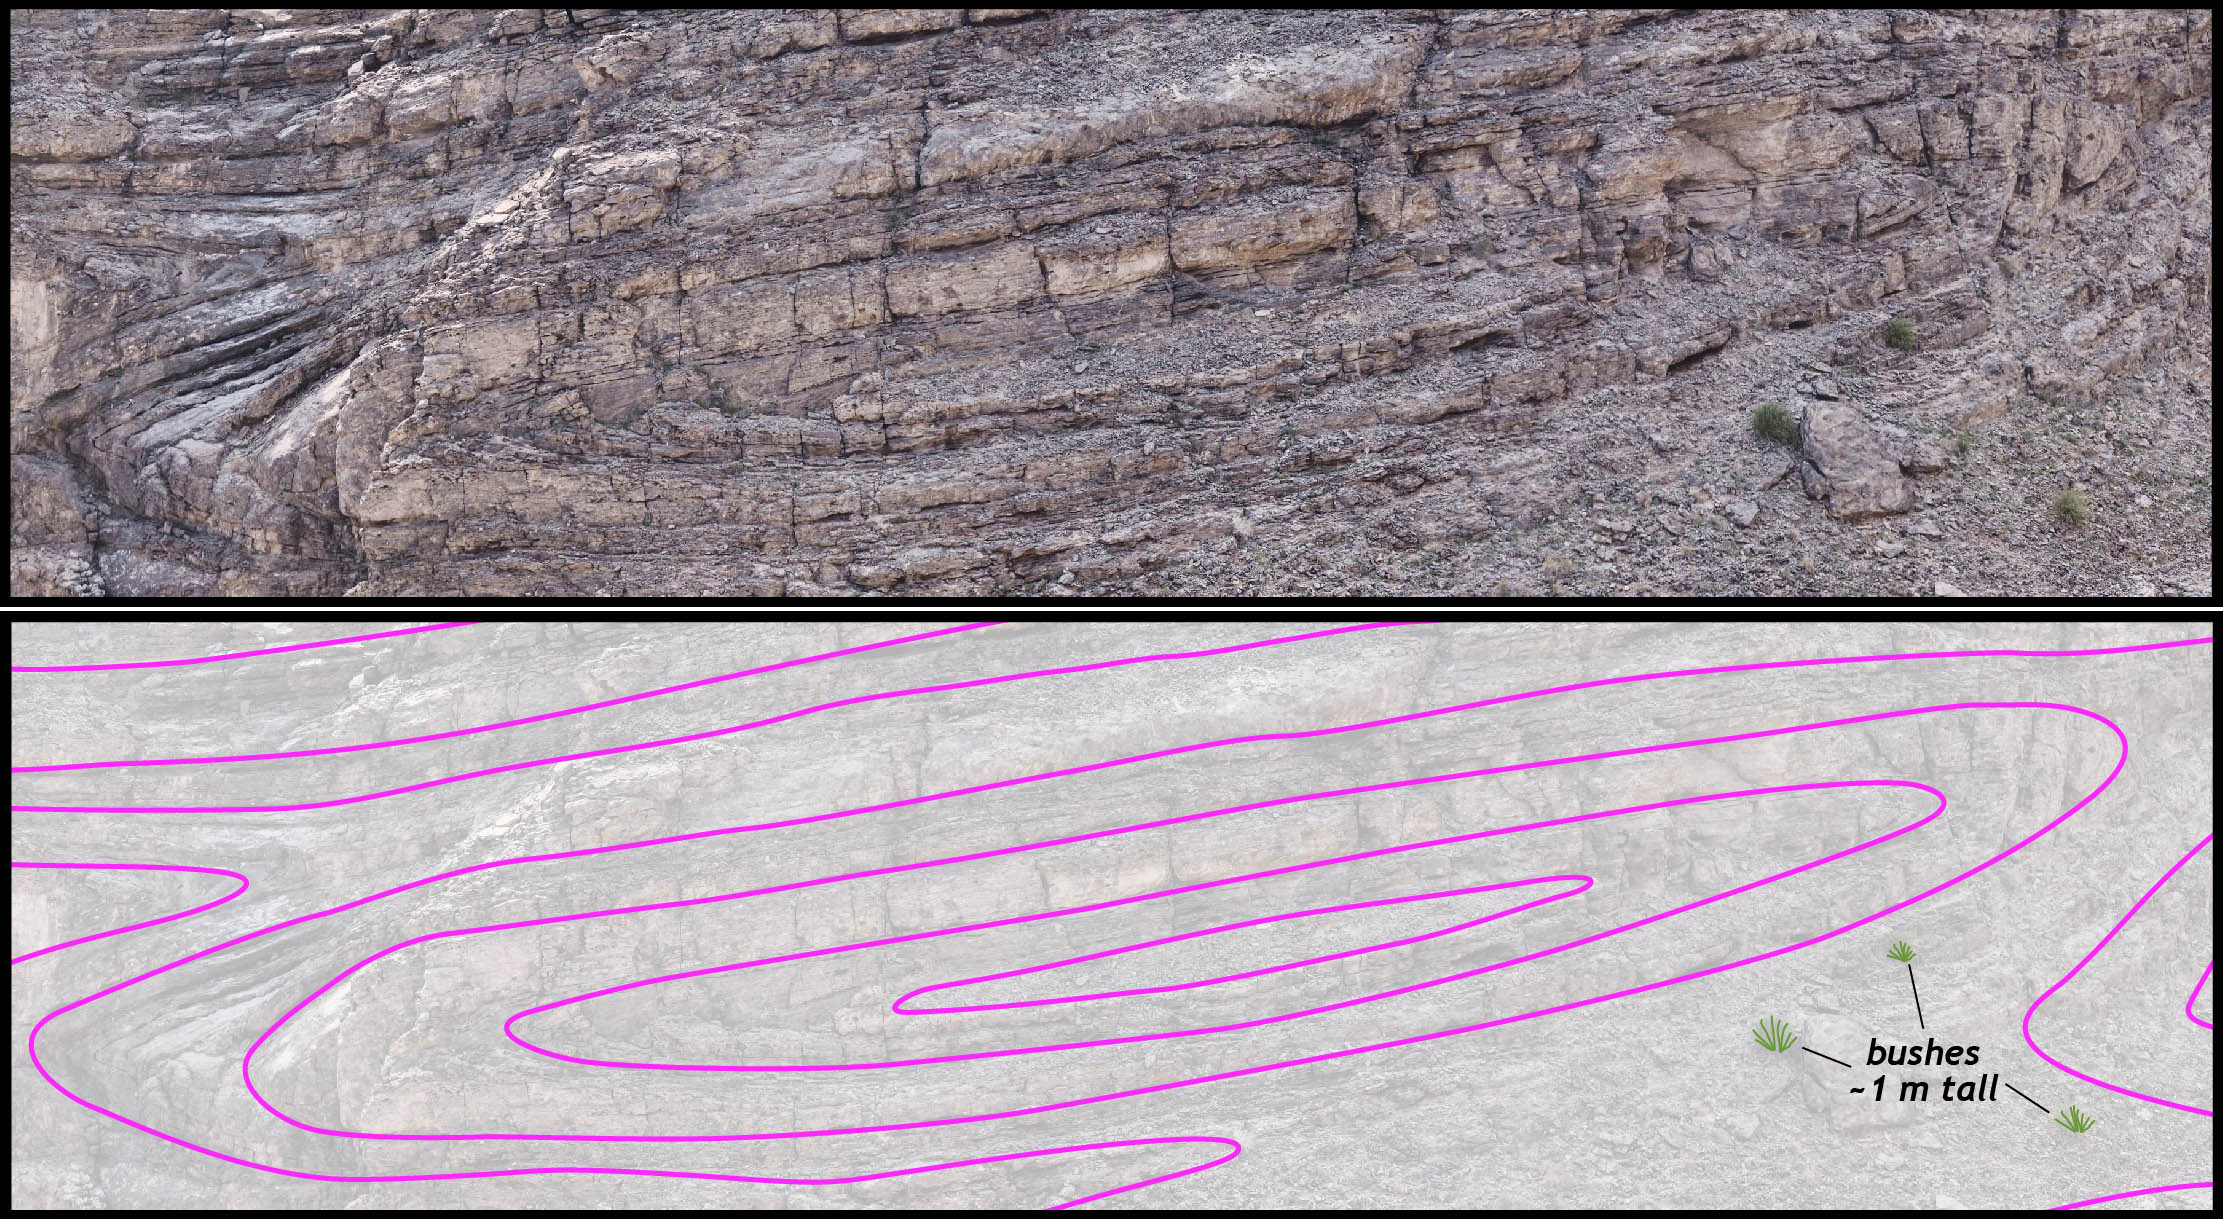 Close up of the central part of the exposure at Wadi Mayh, Oman.  Lower image is a tracing of the layers wrapping around the sheath fold.